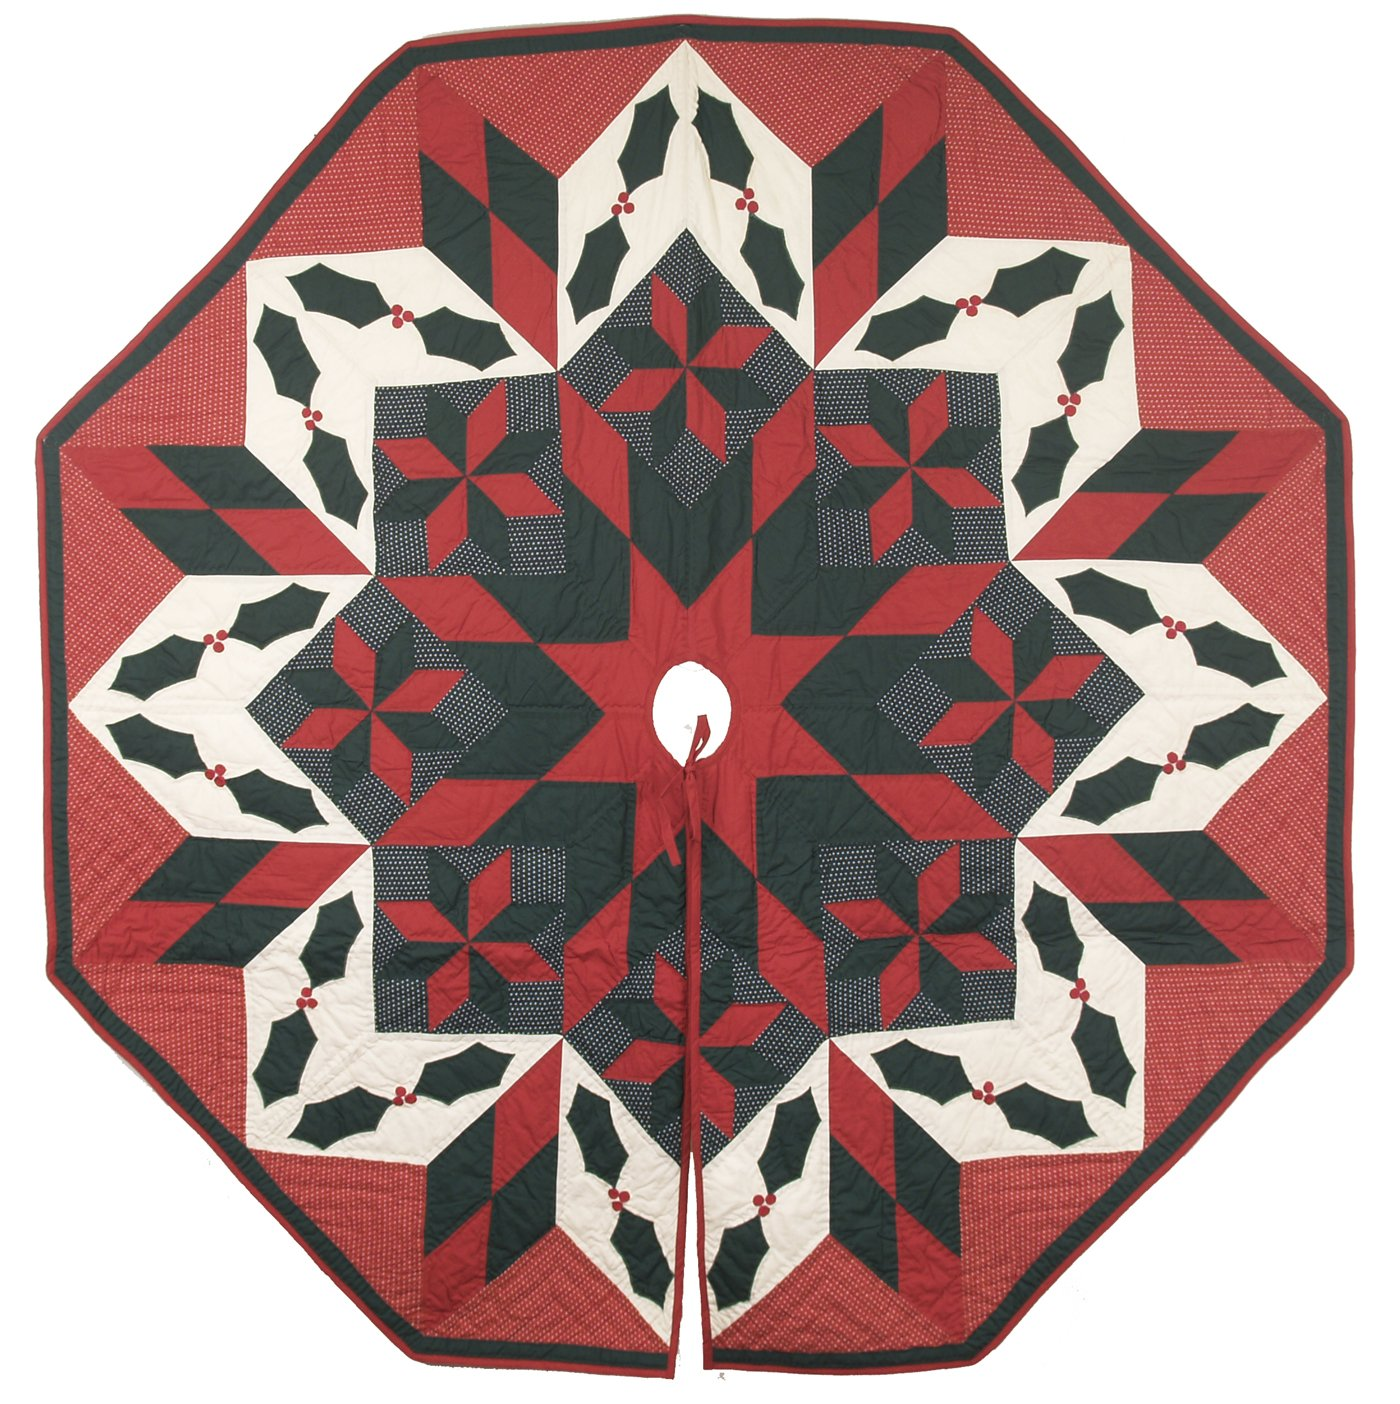 Twinkle Star/Holly Cranberry Red Off-white Quilted Christmas Tree Skirt 60'' End to End Octagone 100% Cotton Handmade Hand Quilted Heirloom Quality